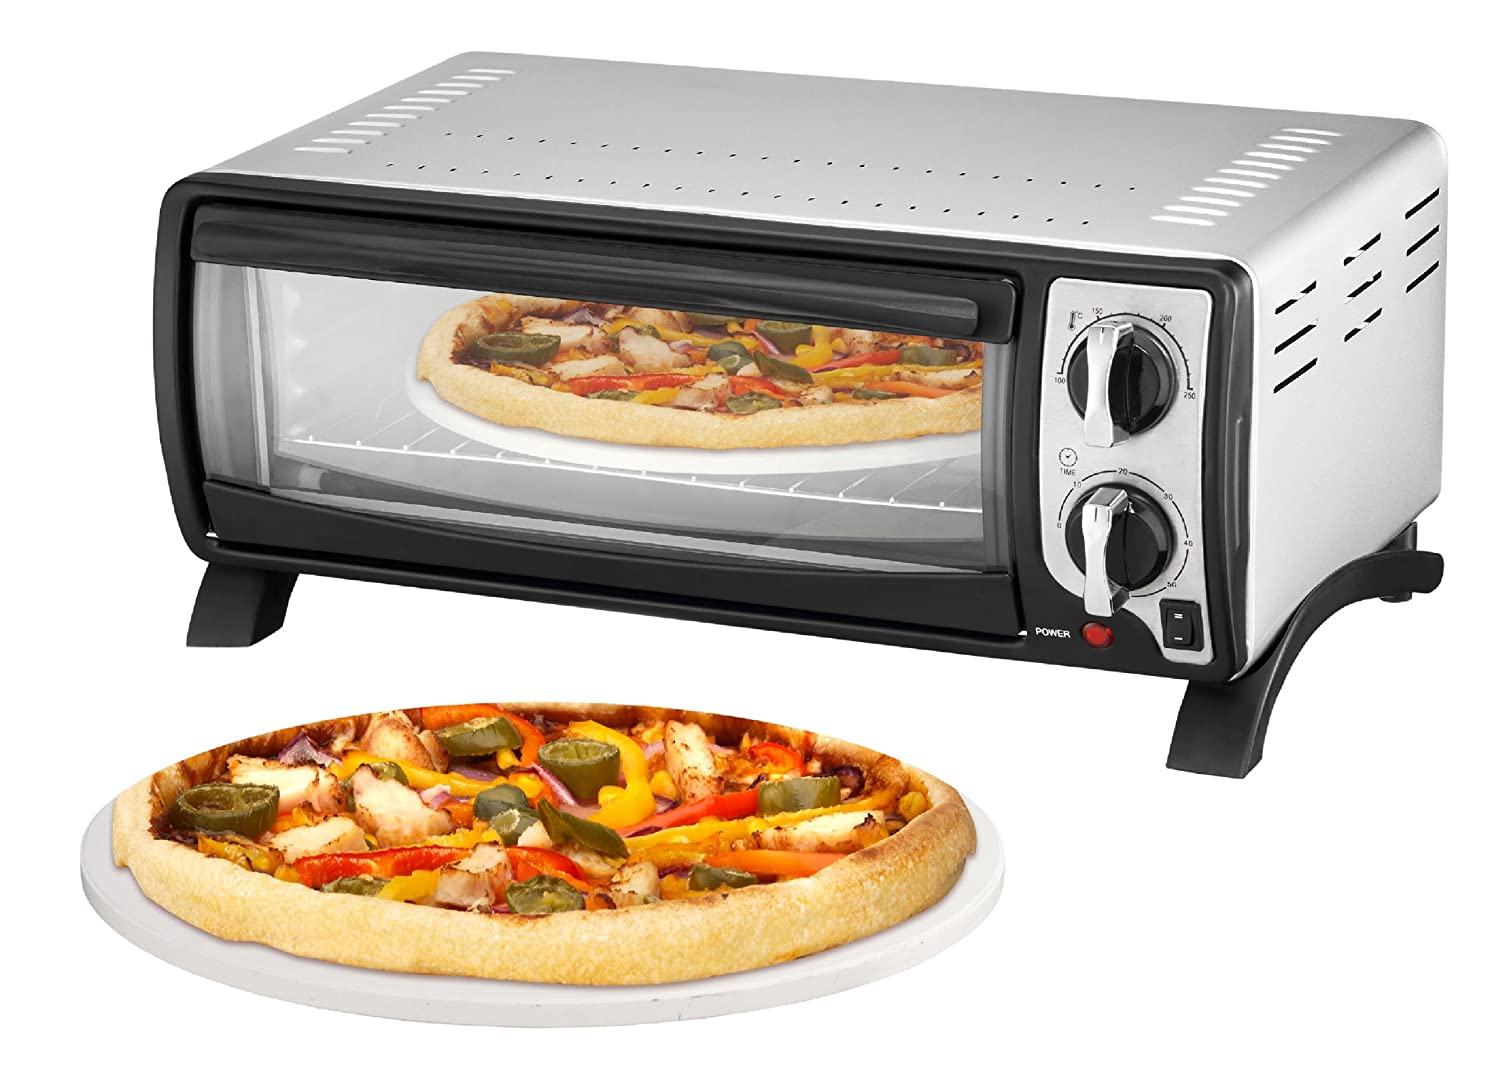 Efbe-Schott SC MBO 1000 SI Pizza and Multi-Oven with High Quality Pizza Stone includes 30 cm Diameter, 1400 W, Silver Efbe Elektrogeräte GmbH